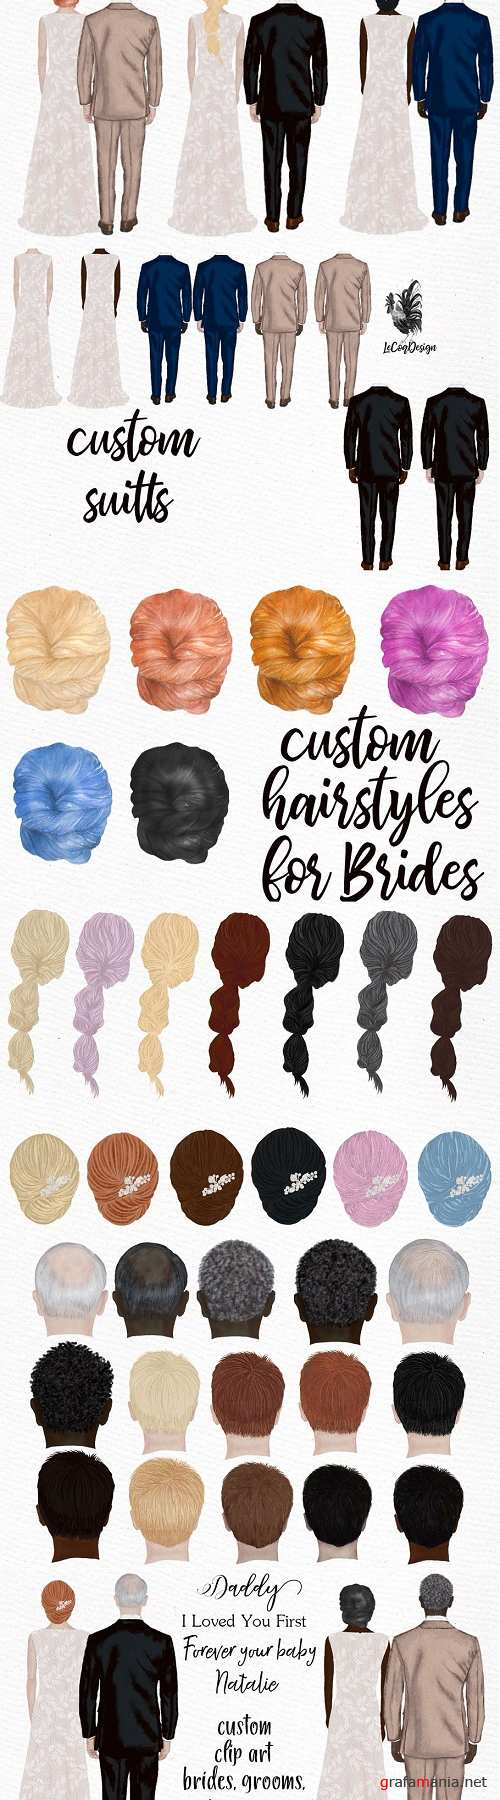 Bride and Groom Wedding clipart - 3833823